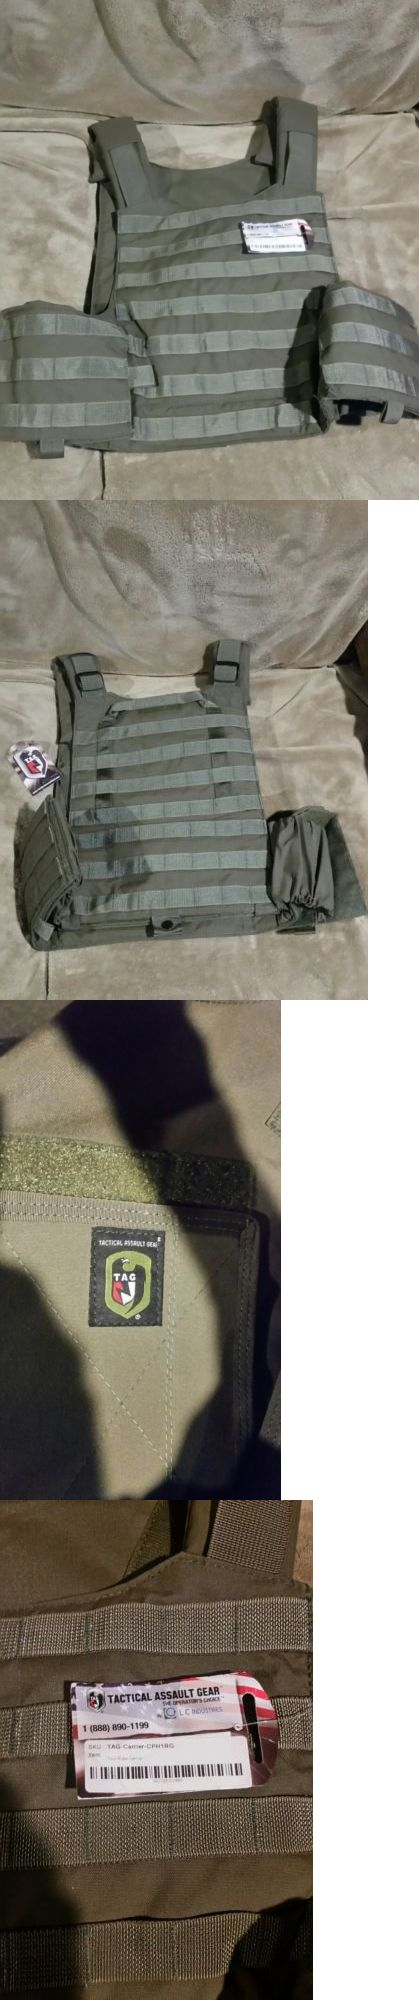 Body Armor and Plates 102537: Tag Tactical Assault Gear Plate Carrier In Ranger Green New -> BUY IT NOW ONLY: $150 on eBay!